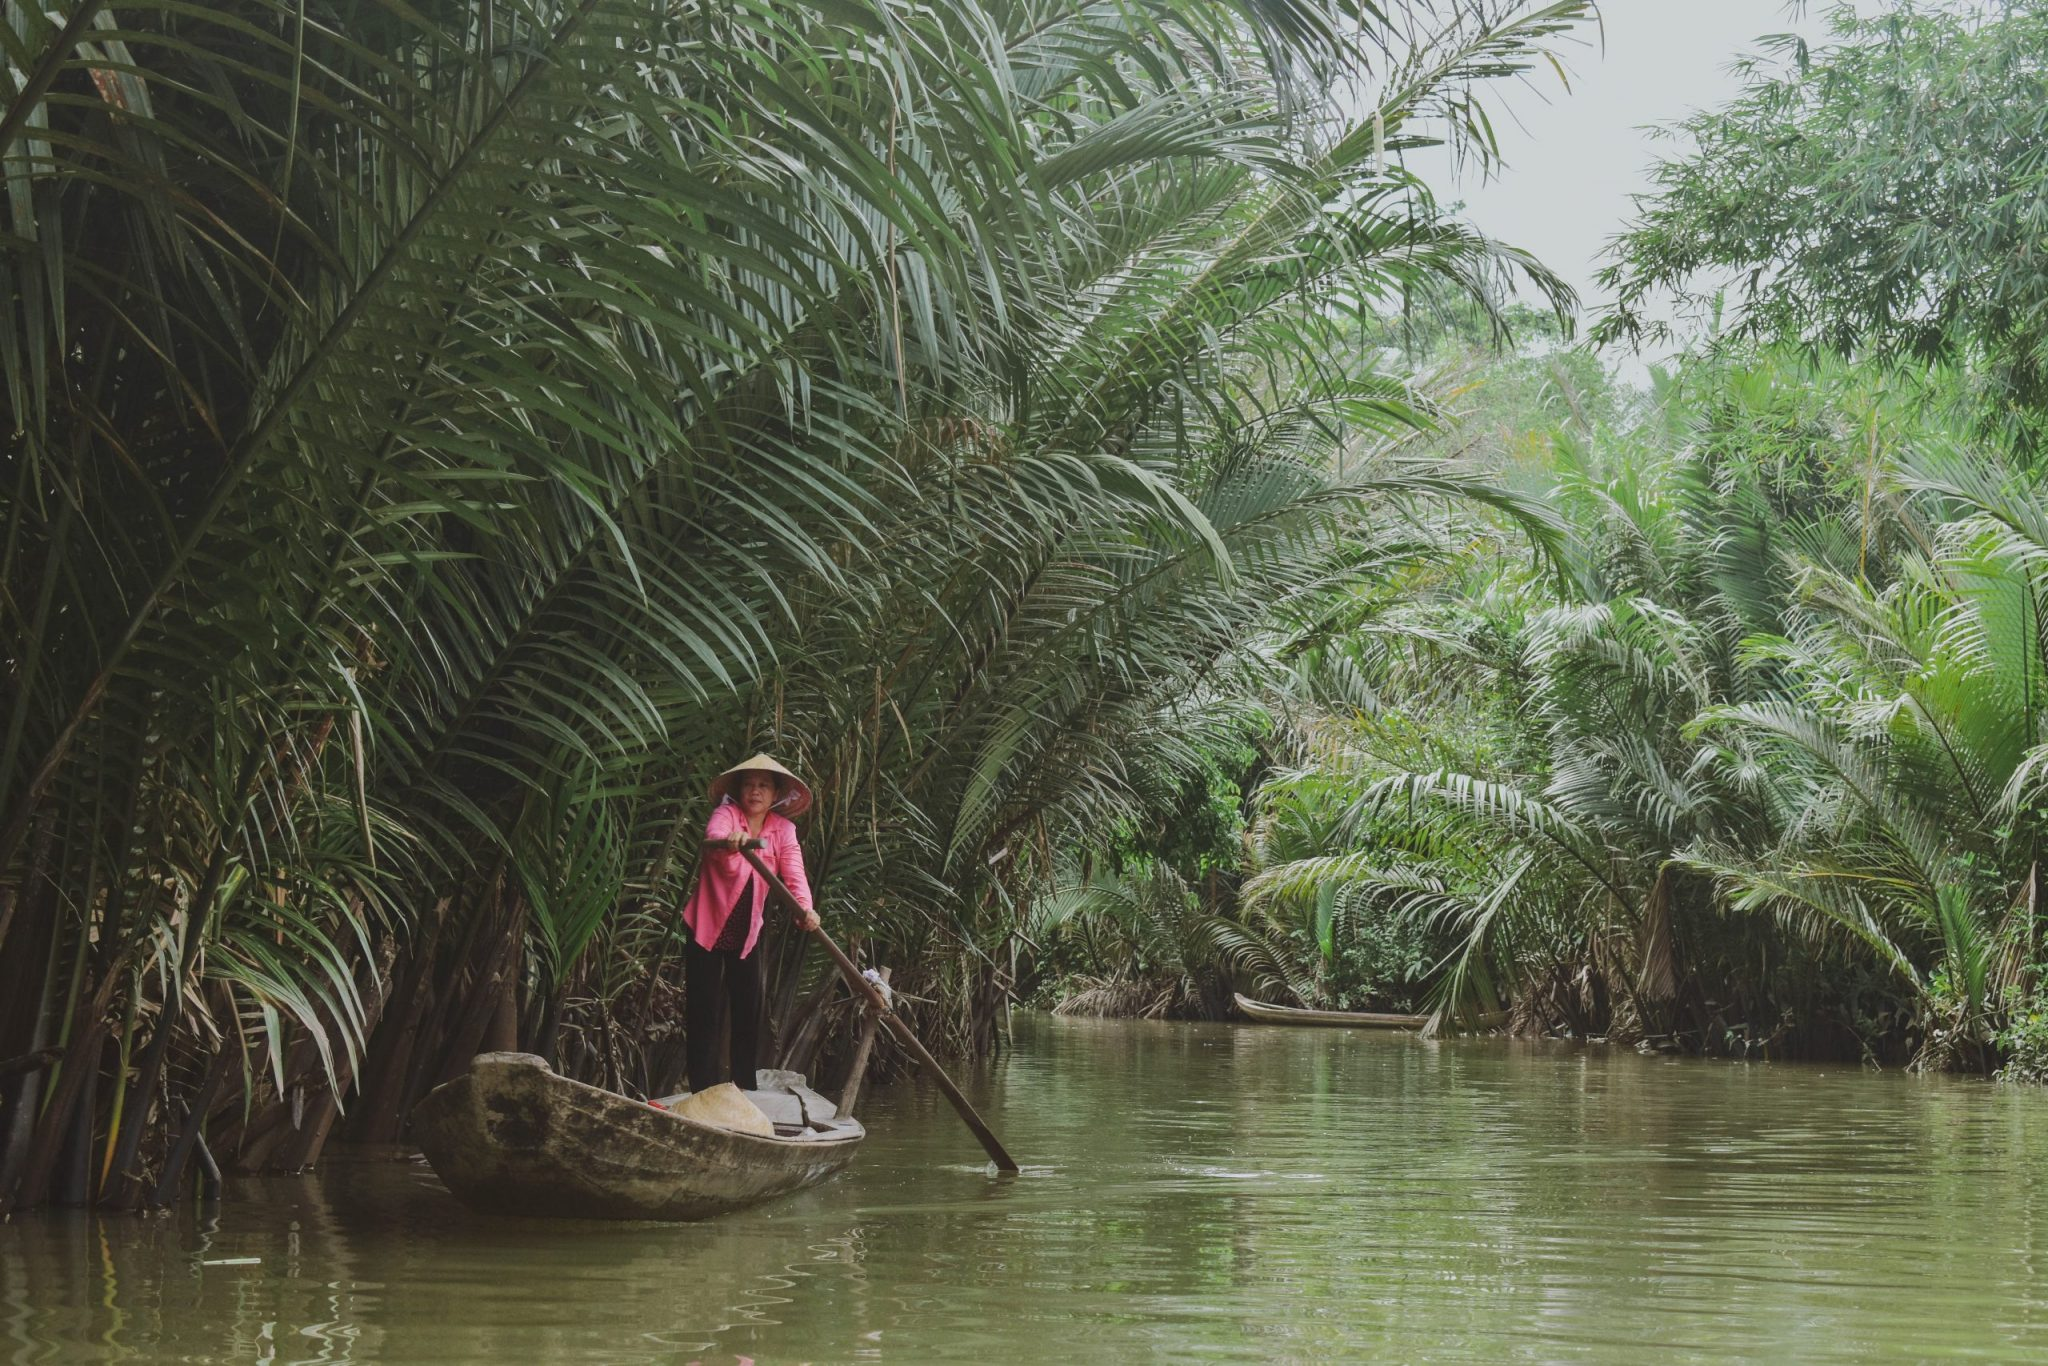 A woman rowing down a tropical river, Vietnam